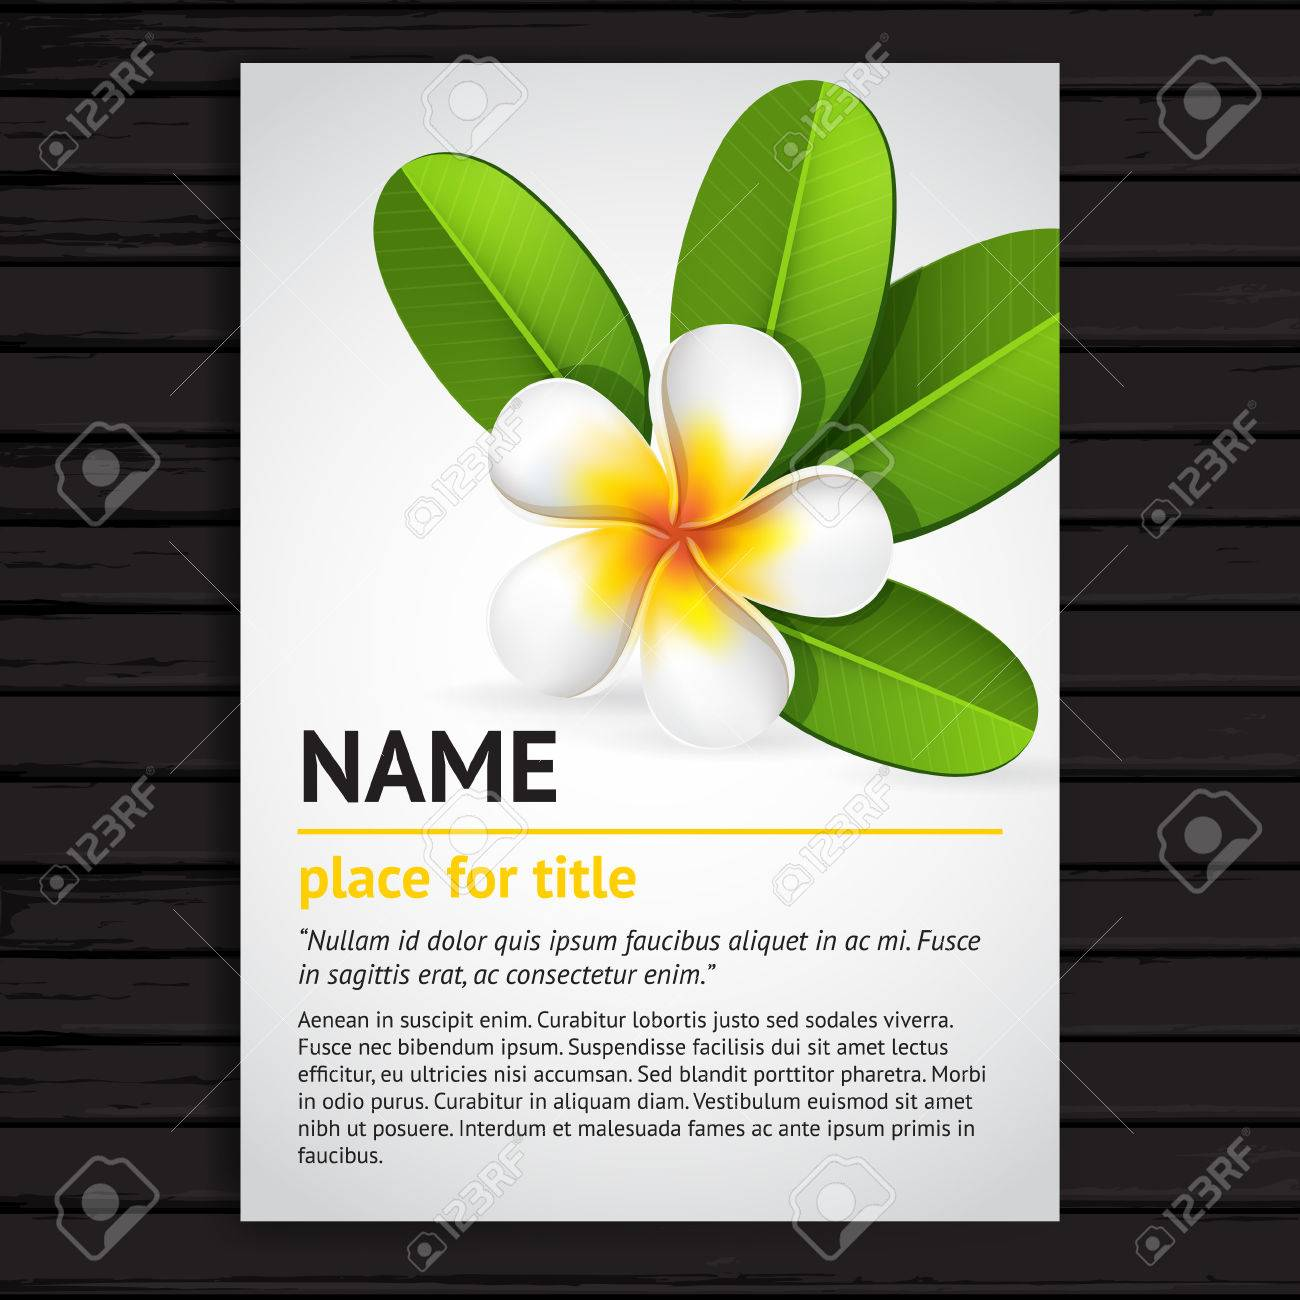 A4 Size Poster Template Design With Realistic White Frangipani Royalty Free Cliparts Vectors And Stock Illustration Image 33416913